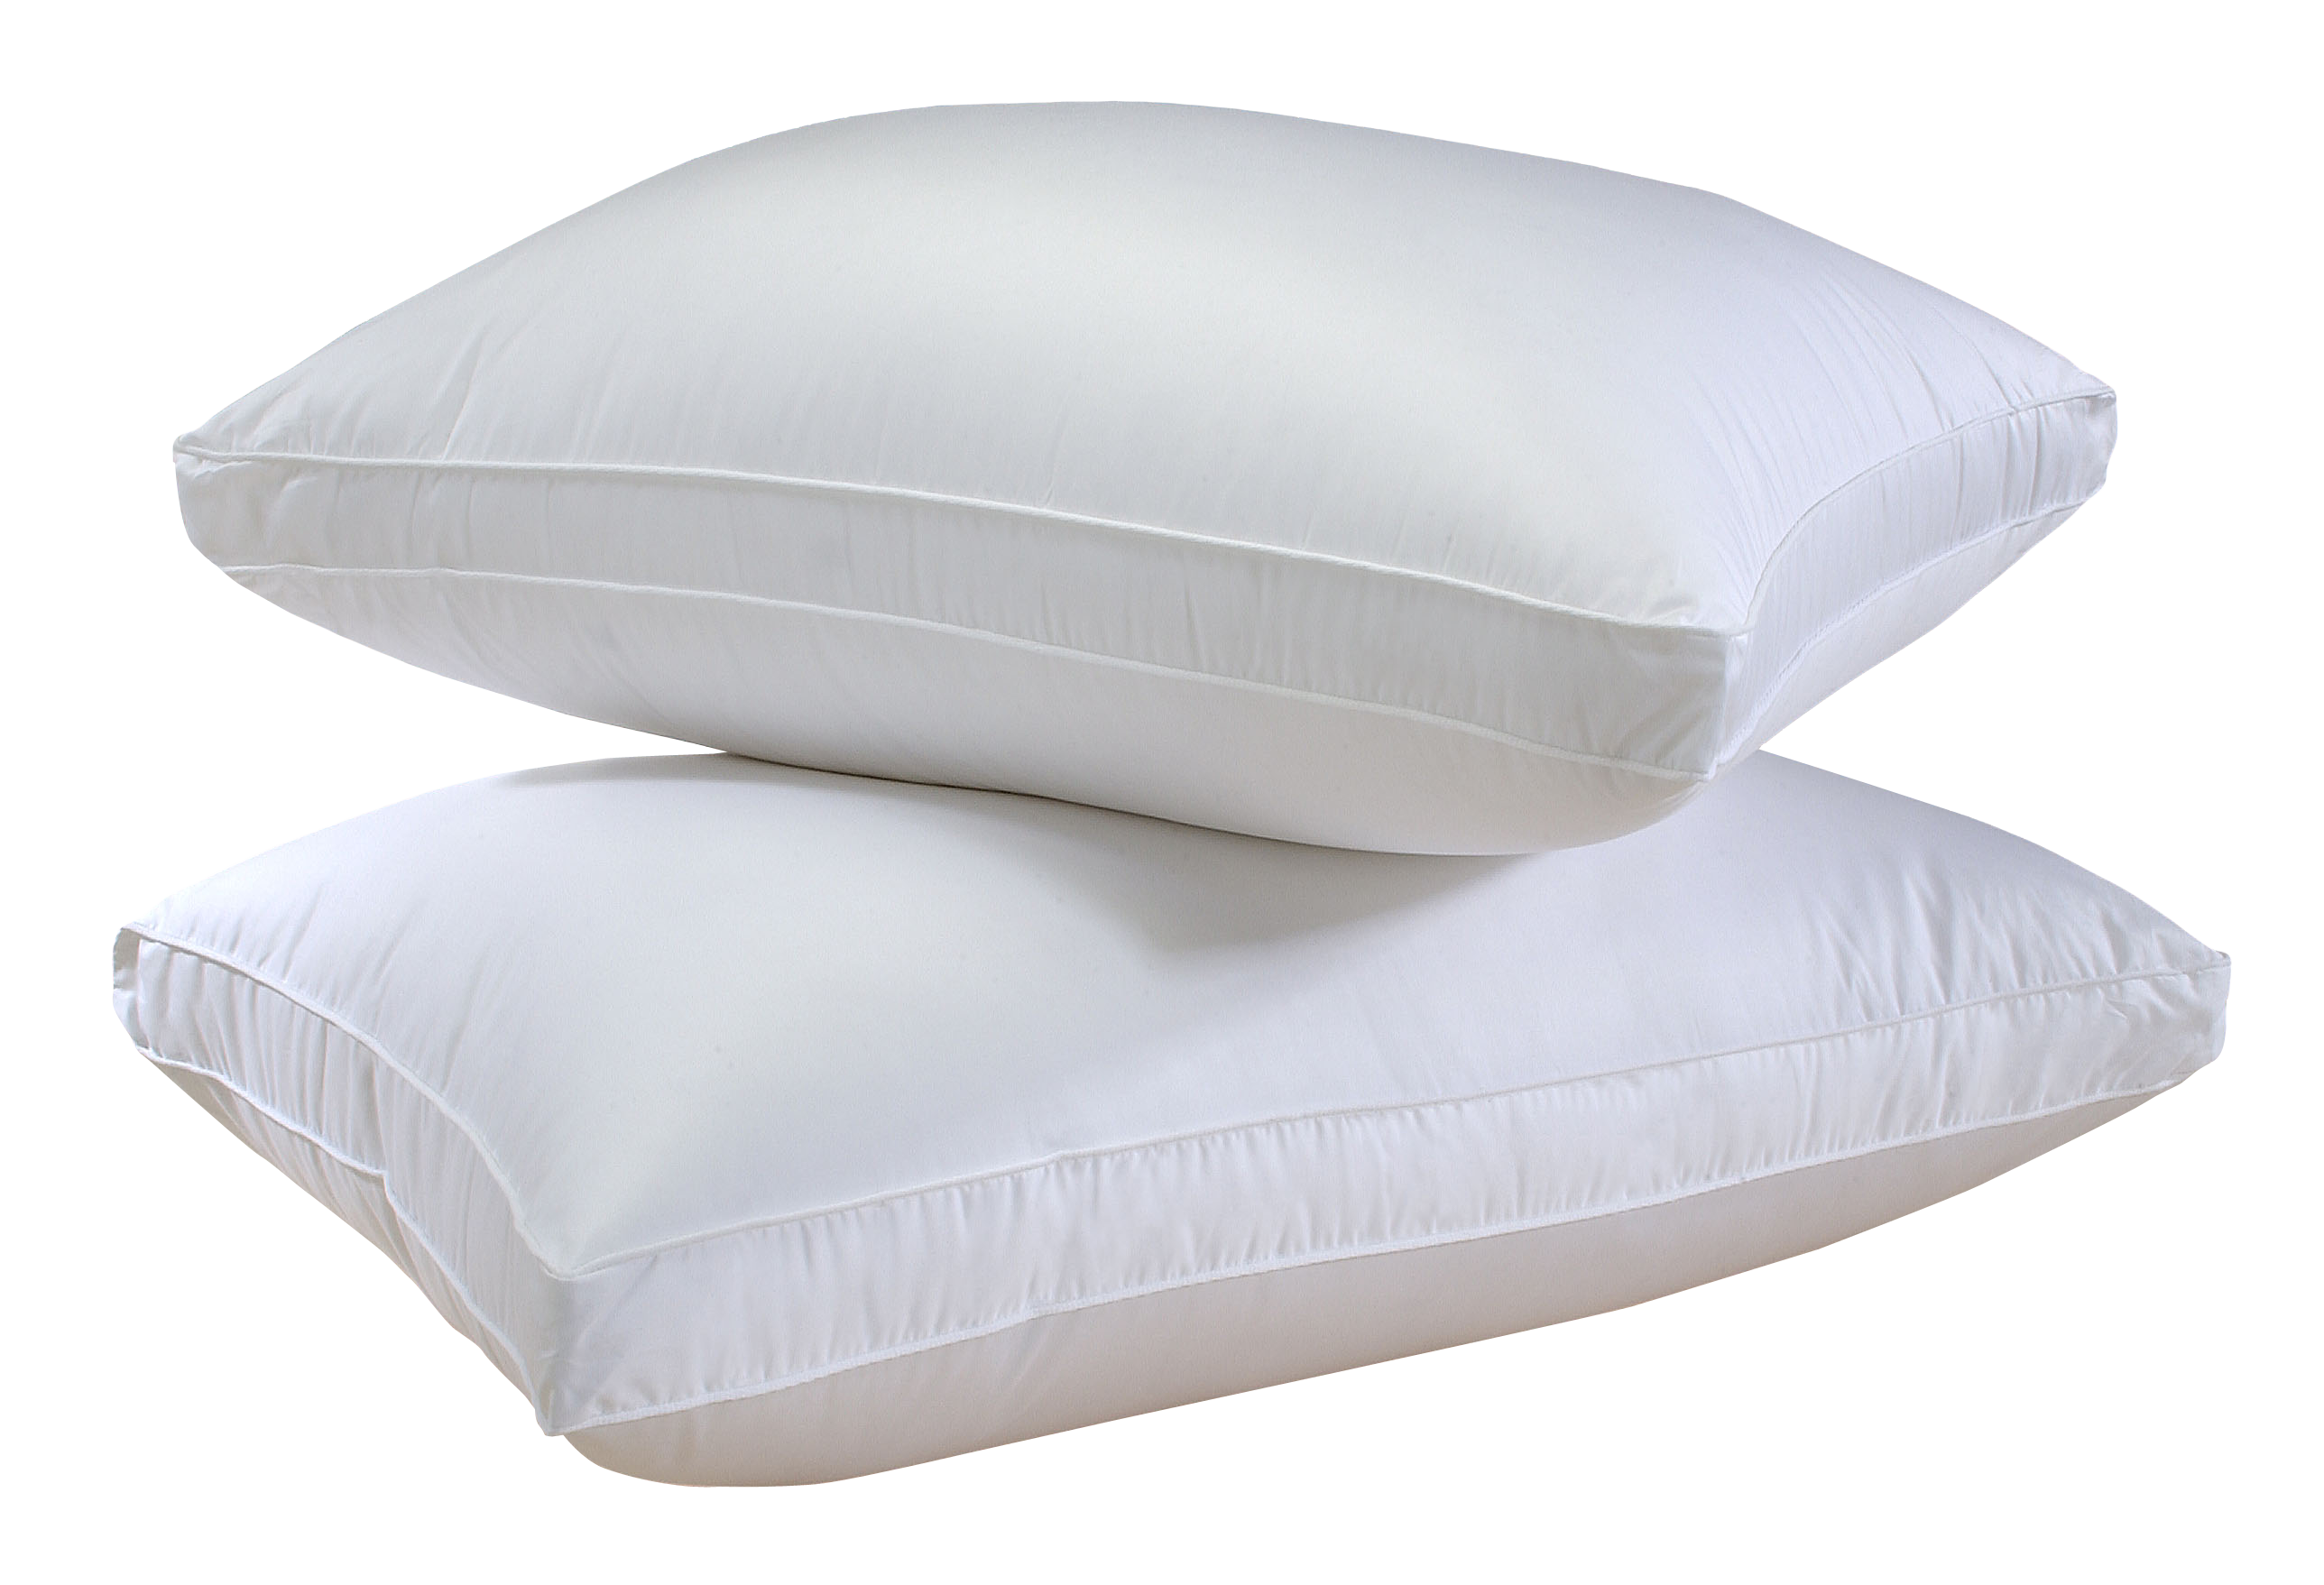 Cover, Bed Sheet Pillow, Cushion Pillow, Png Transparent Image 2855